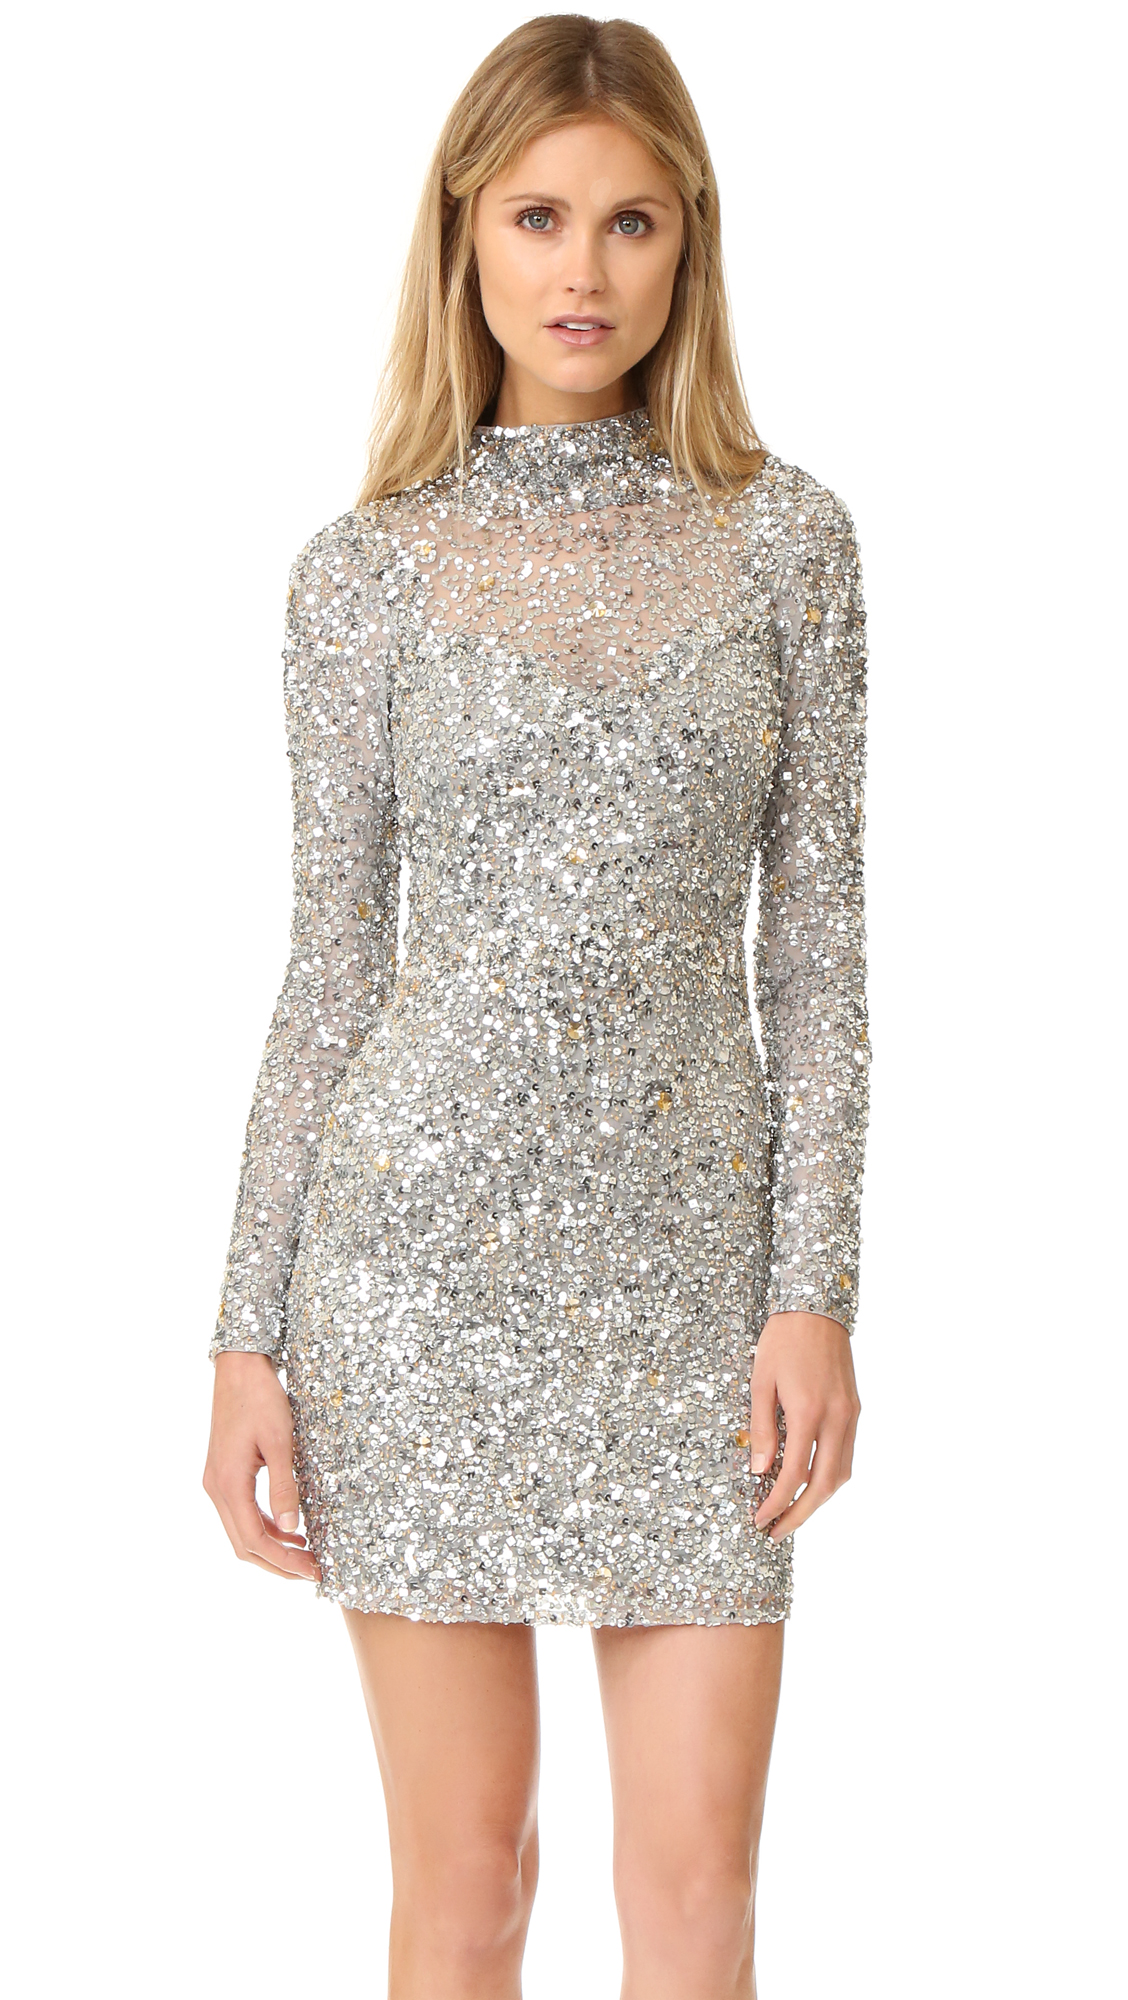 A formfitting Parker mini dress with eye catching crystals and sequins. Open back. Long sleeves. Button closure at neckline and hidden back zip. Lined. Fabric: Sequined mesh. Shell: 100% nylon. Lining: 100% polyester. Professional spot clean. Imported, India.